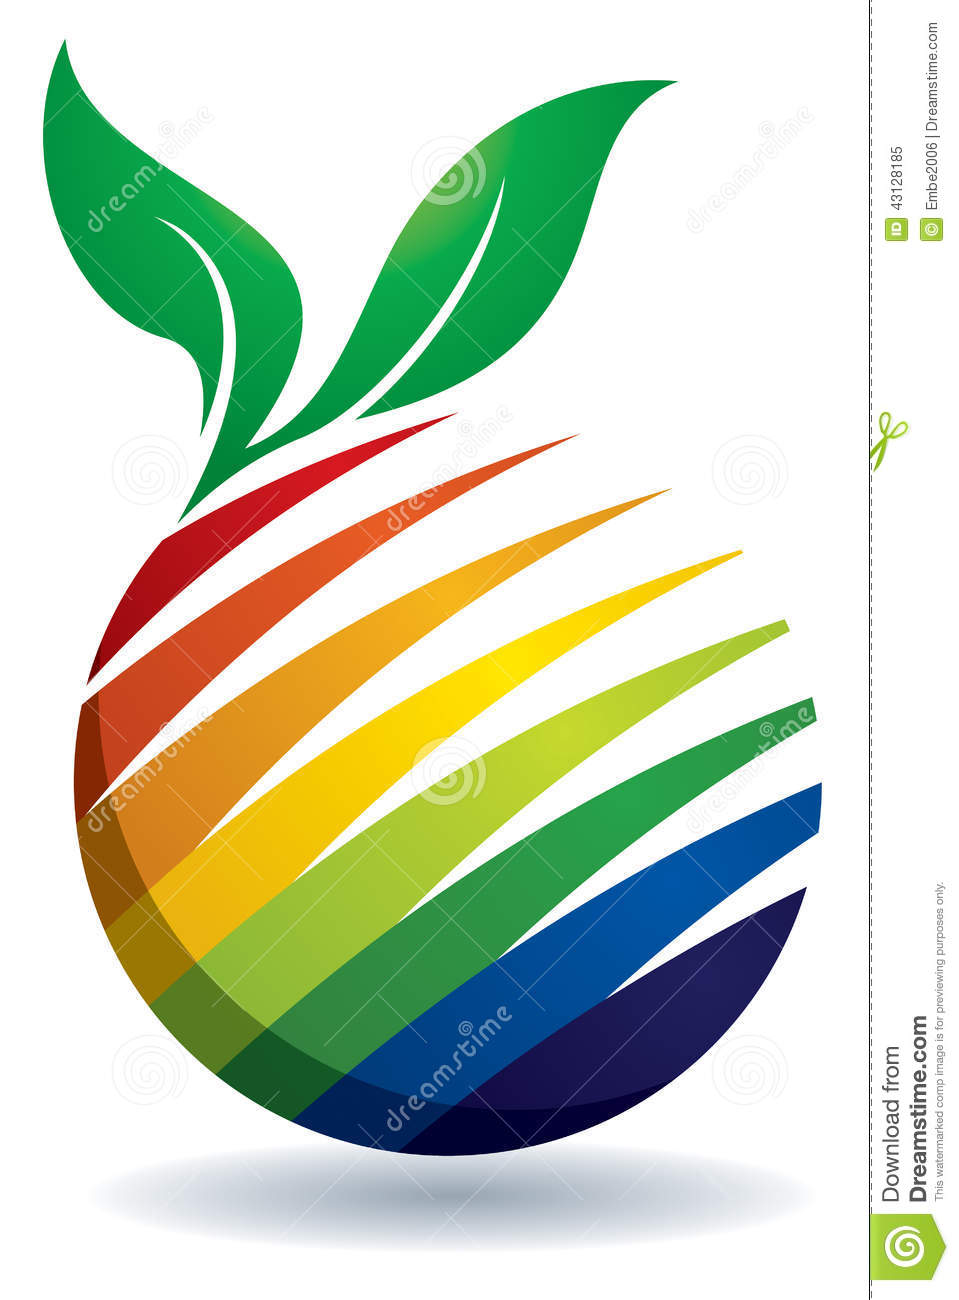 Royalty Free Stock Photo Soursop Image29536355 besides Coke V Pepsi 157280865 likewise Cartoon Vegetables Fruits 137153615 likewise Stock Vector Healthy Lifestyle Poster besides Stock Photos Half Cut Open Apple Image17758803. on drawing apple juice